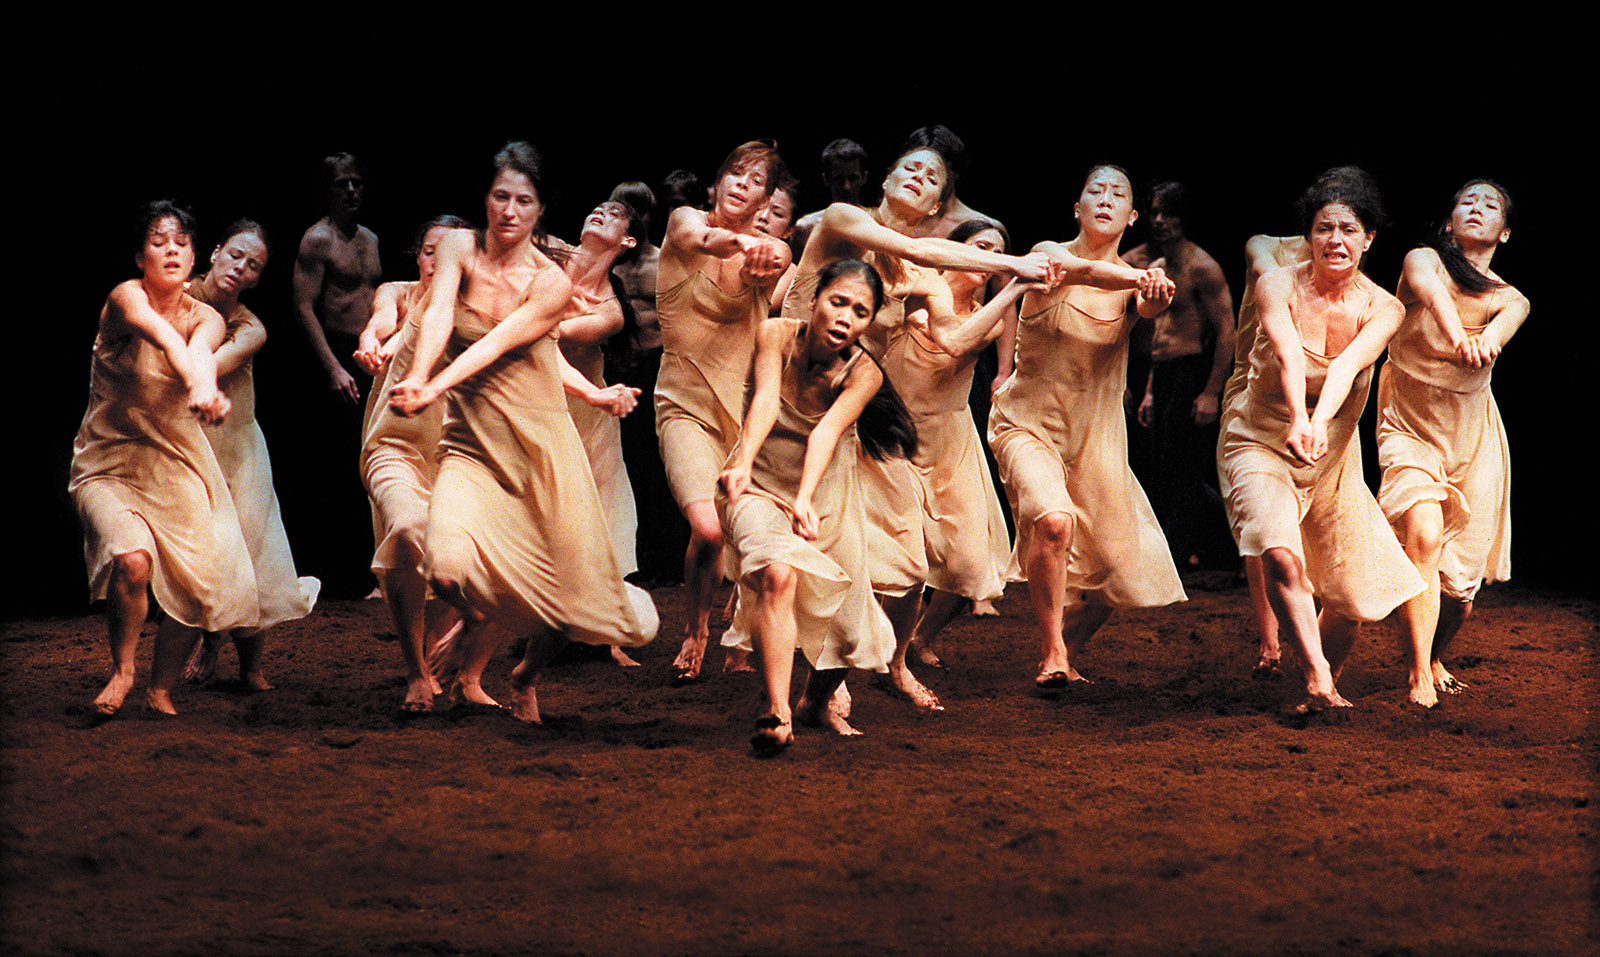 A scene from Pina Bausch's production of Igor Stravinsky's The Rite of Spring